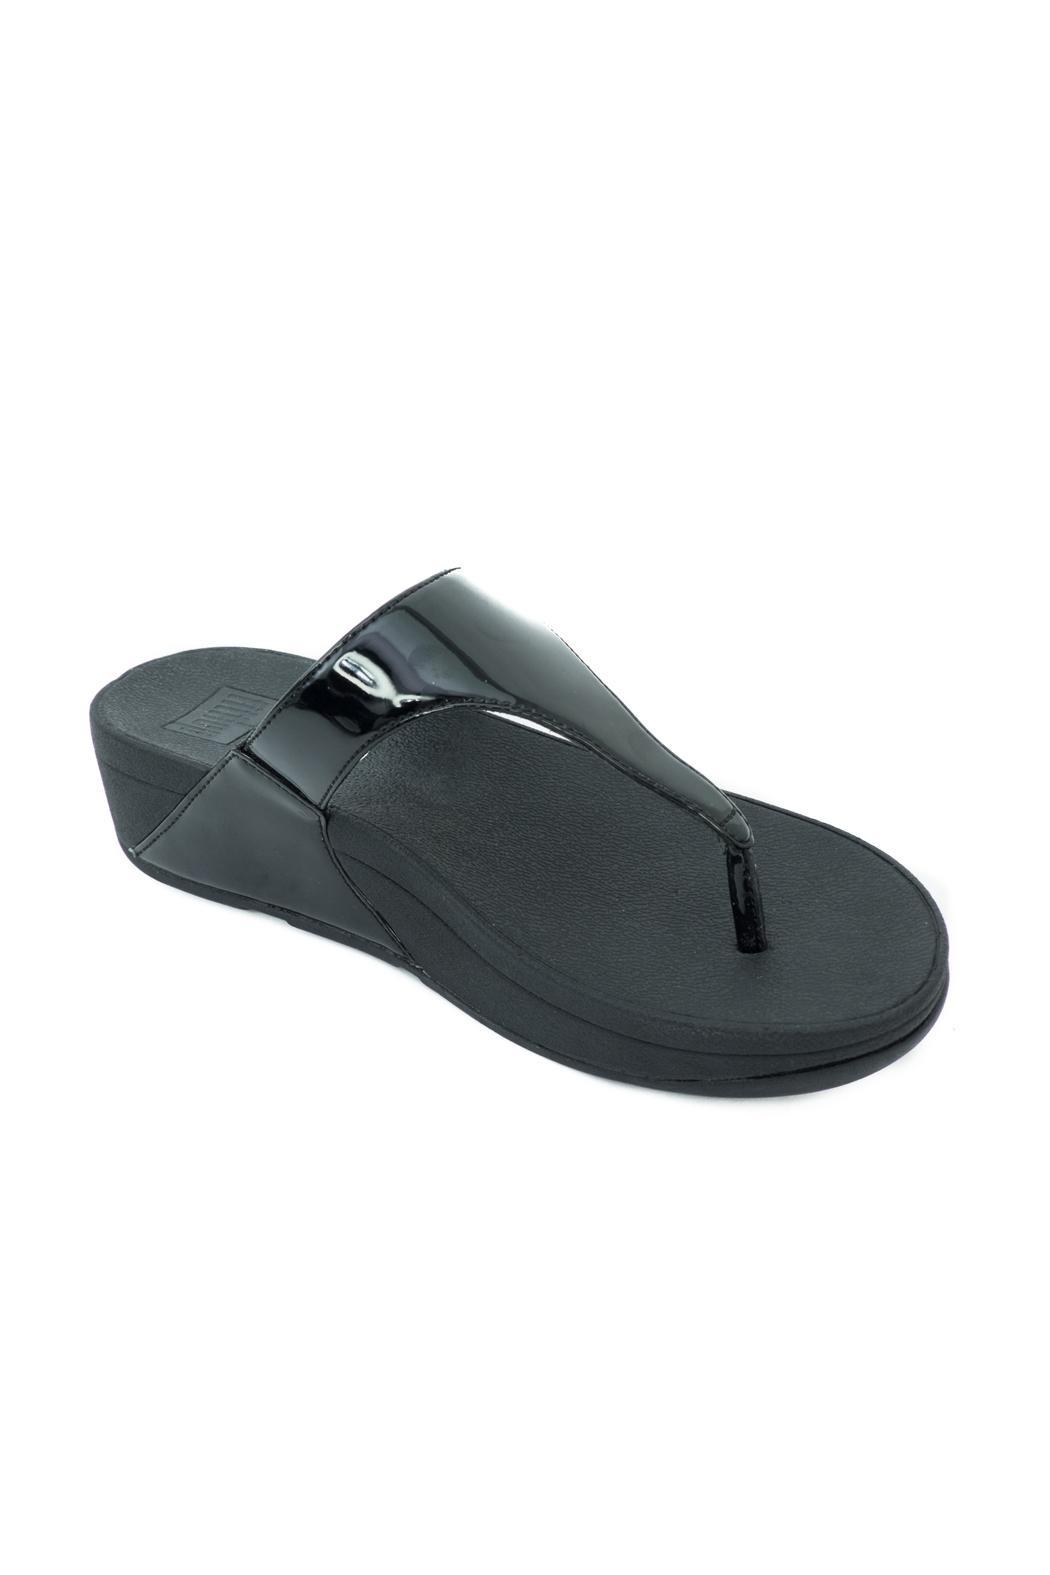 49bb5b942 Fitflop The Skinny Black from Canada by Starlet — Shoptiques